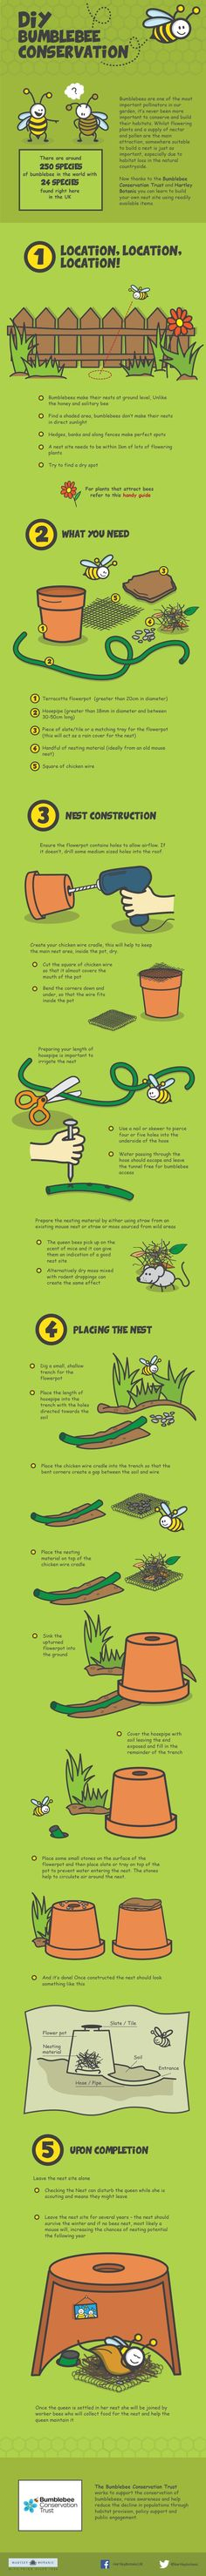 DIY Bumble Bee Nest | Make Your Own Bee Nest